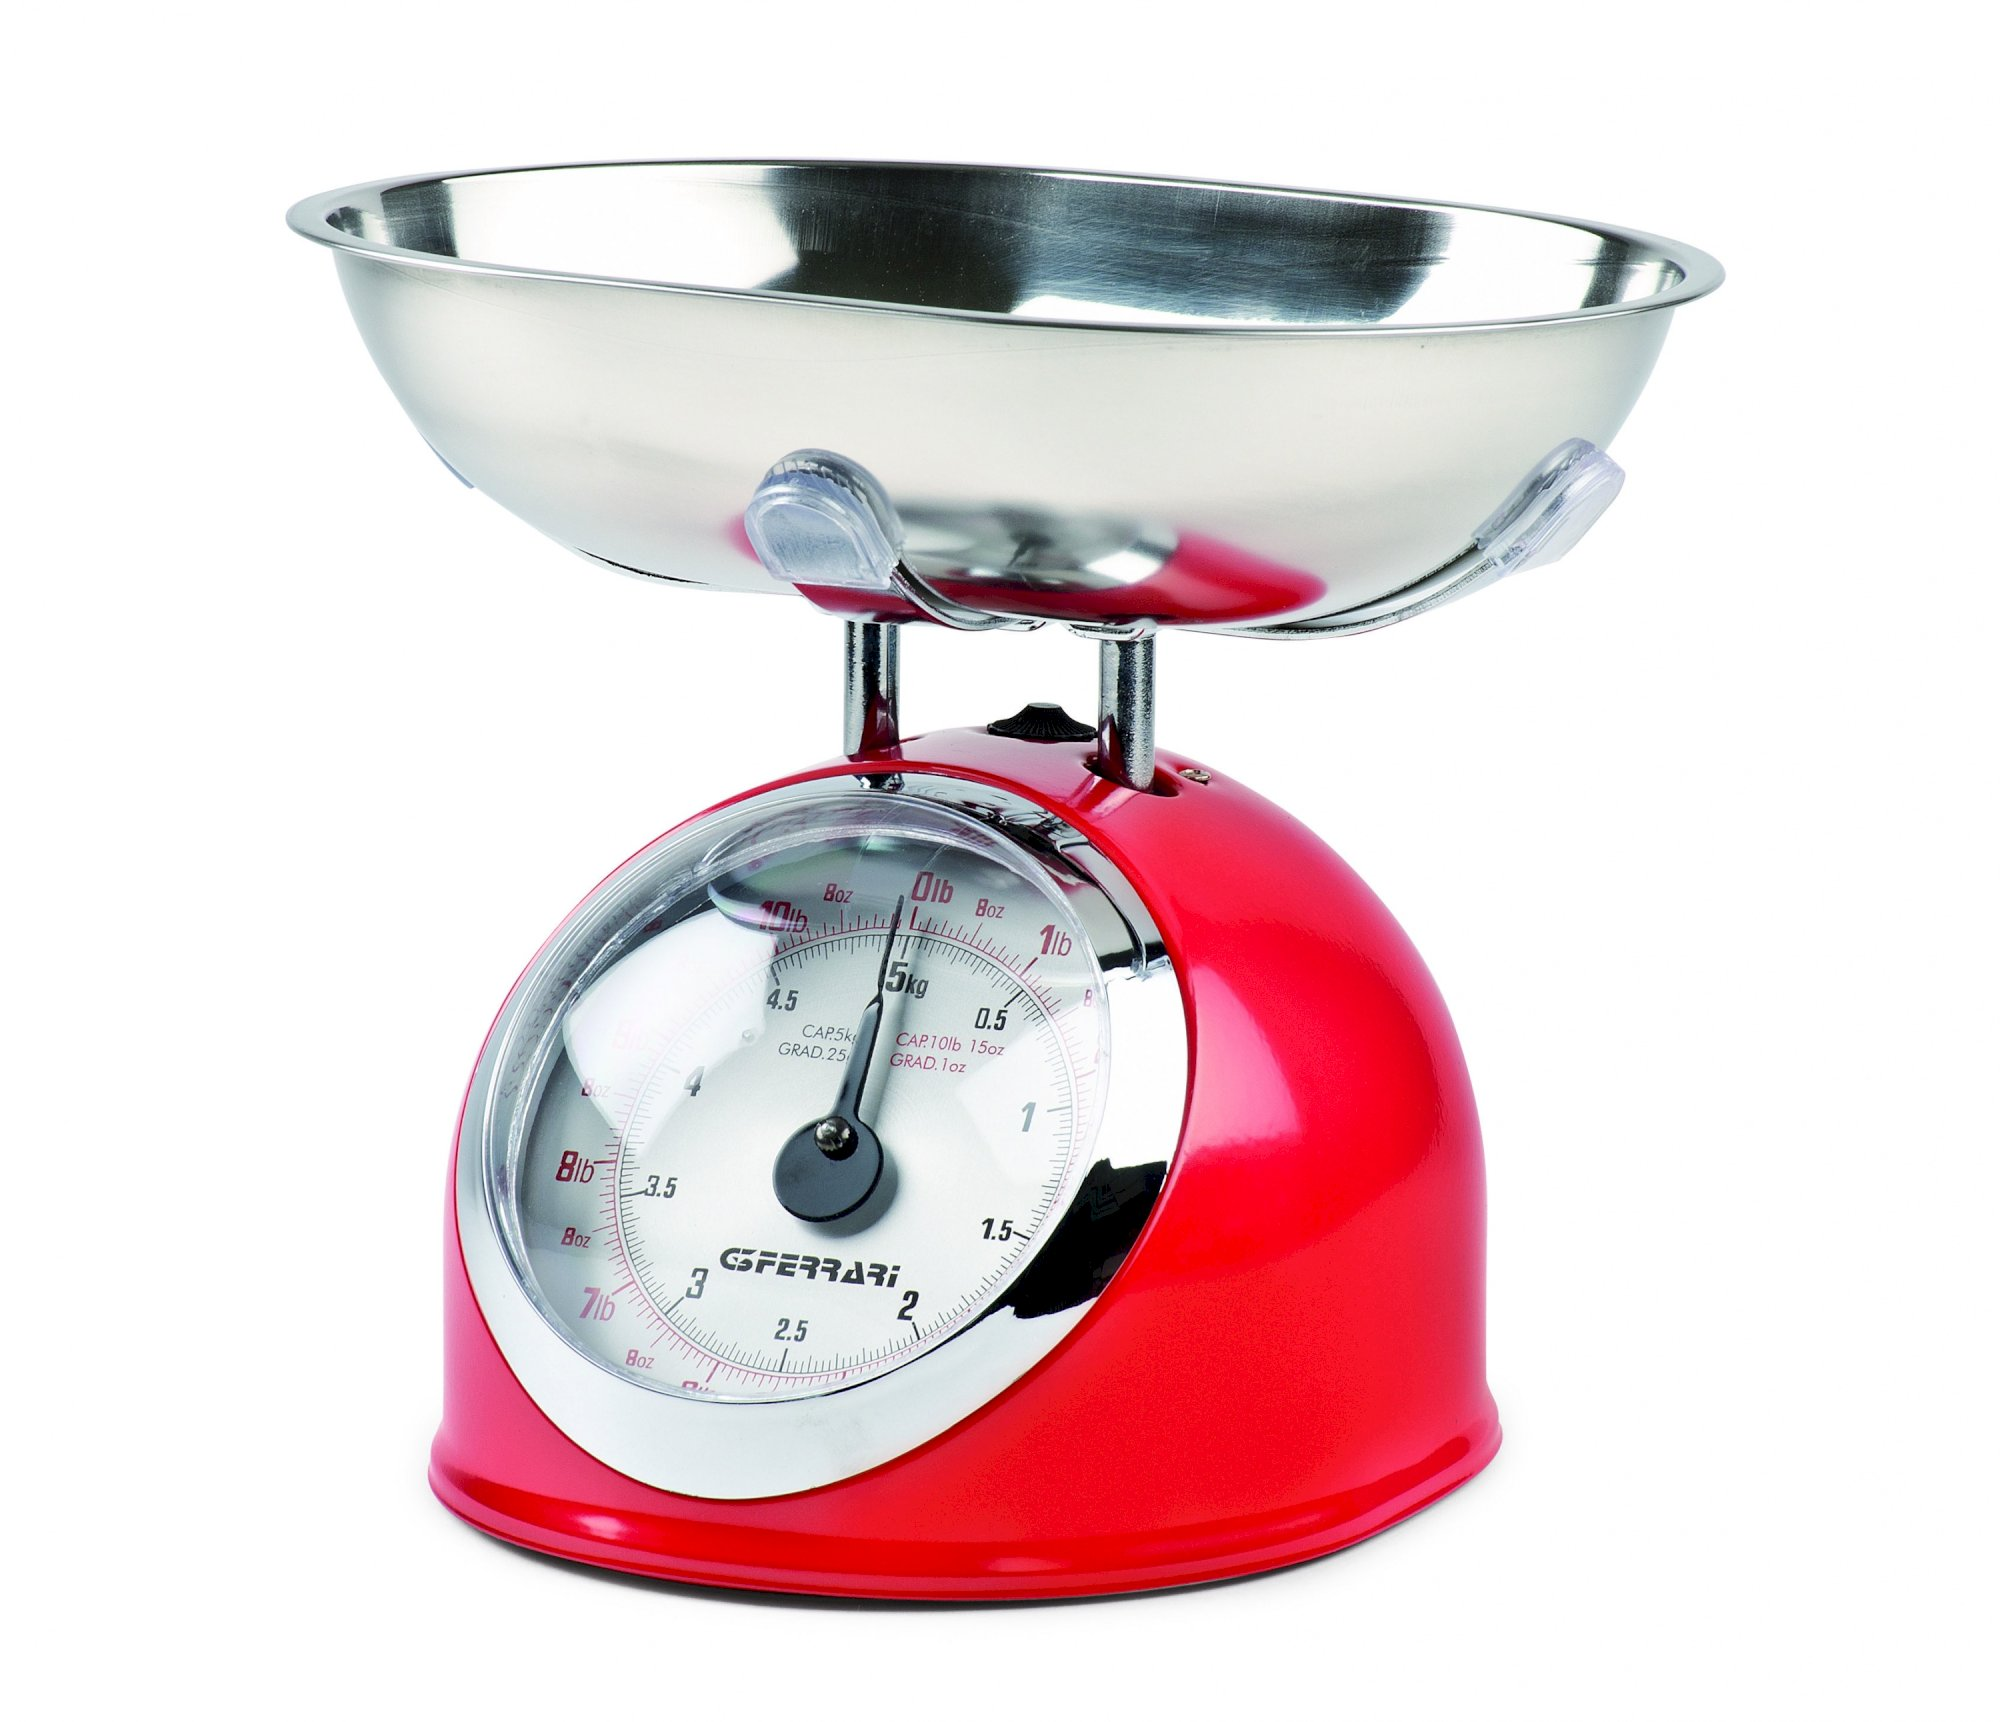 G2000302, Aska, mechanical kitchen scale, red